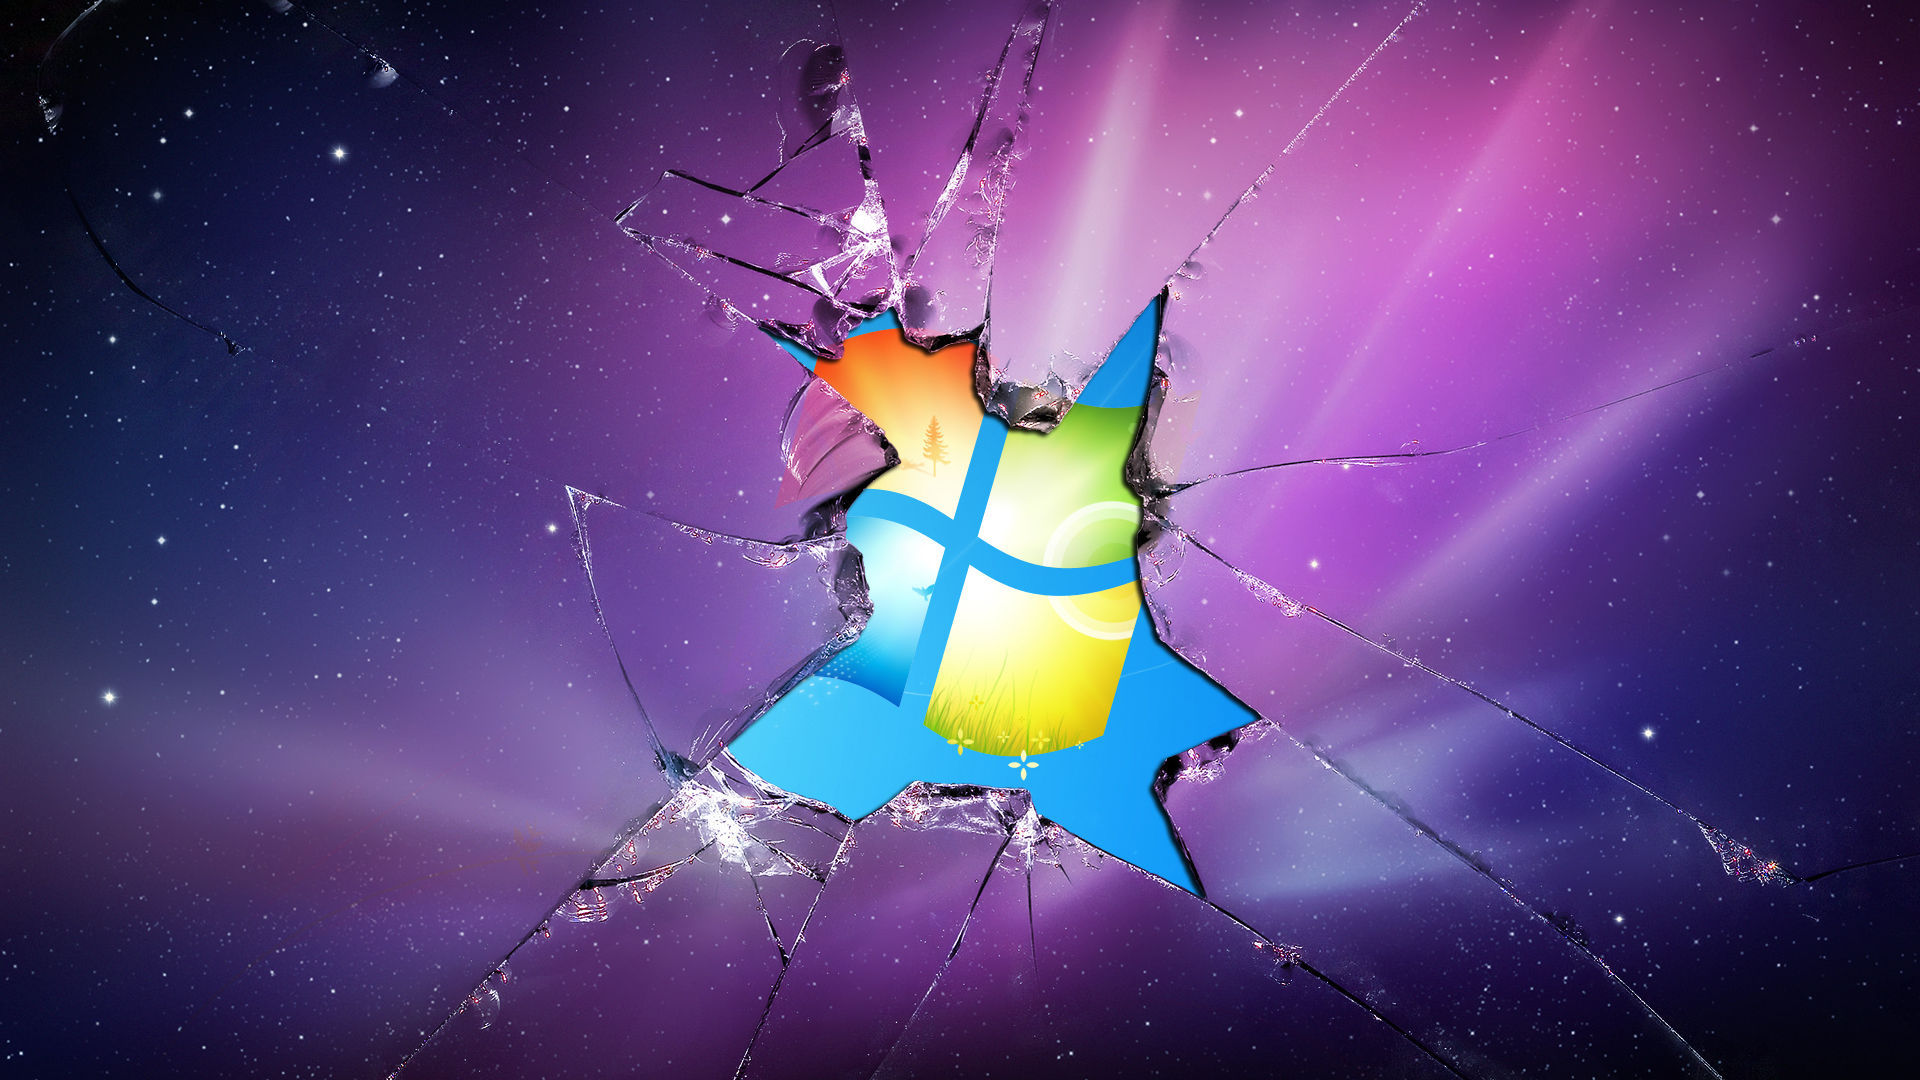 Wallpapers windows maximumwallhd for Mac fenetre hors ecran